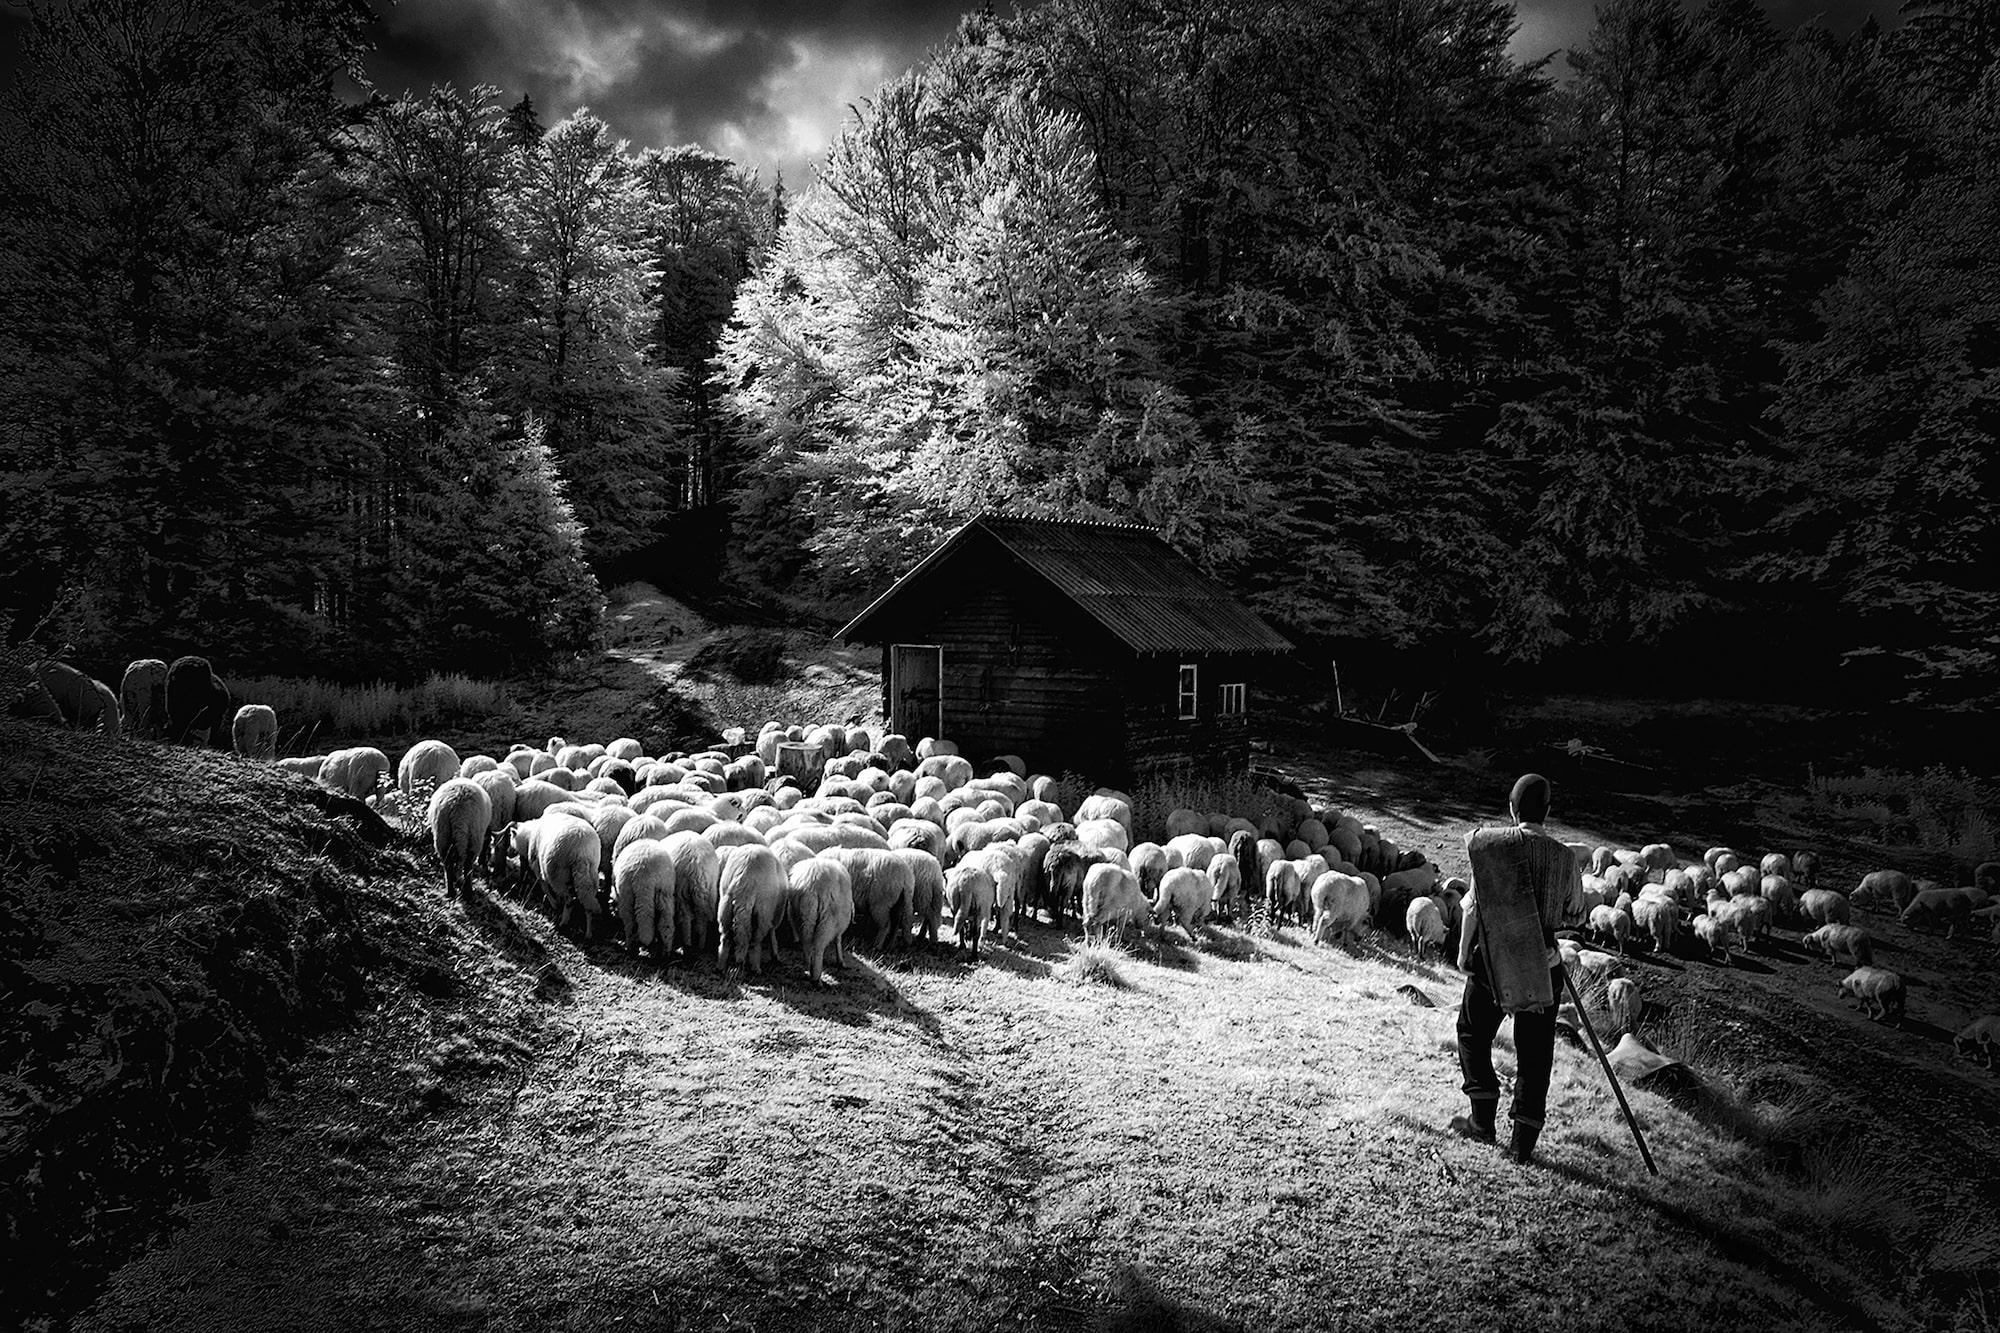 alin popescu sony alpha 6000 infrared shot of a shepheard herding sheep in front of a wodden shed